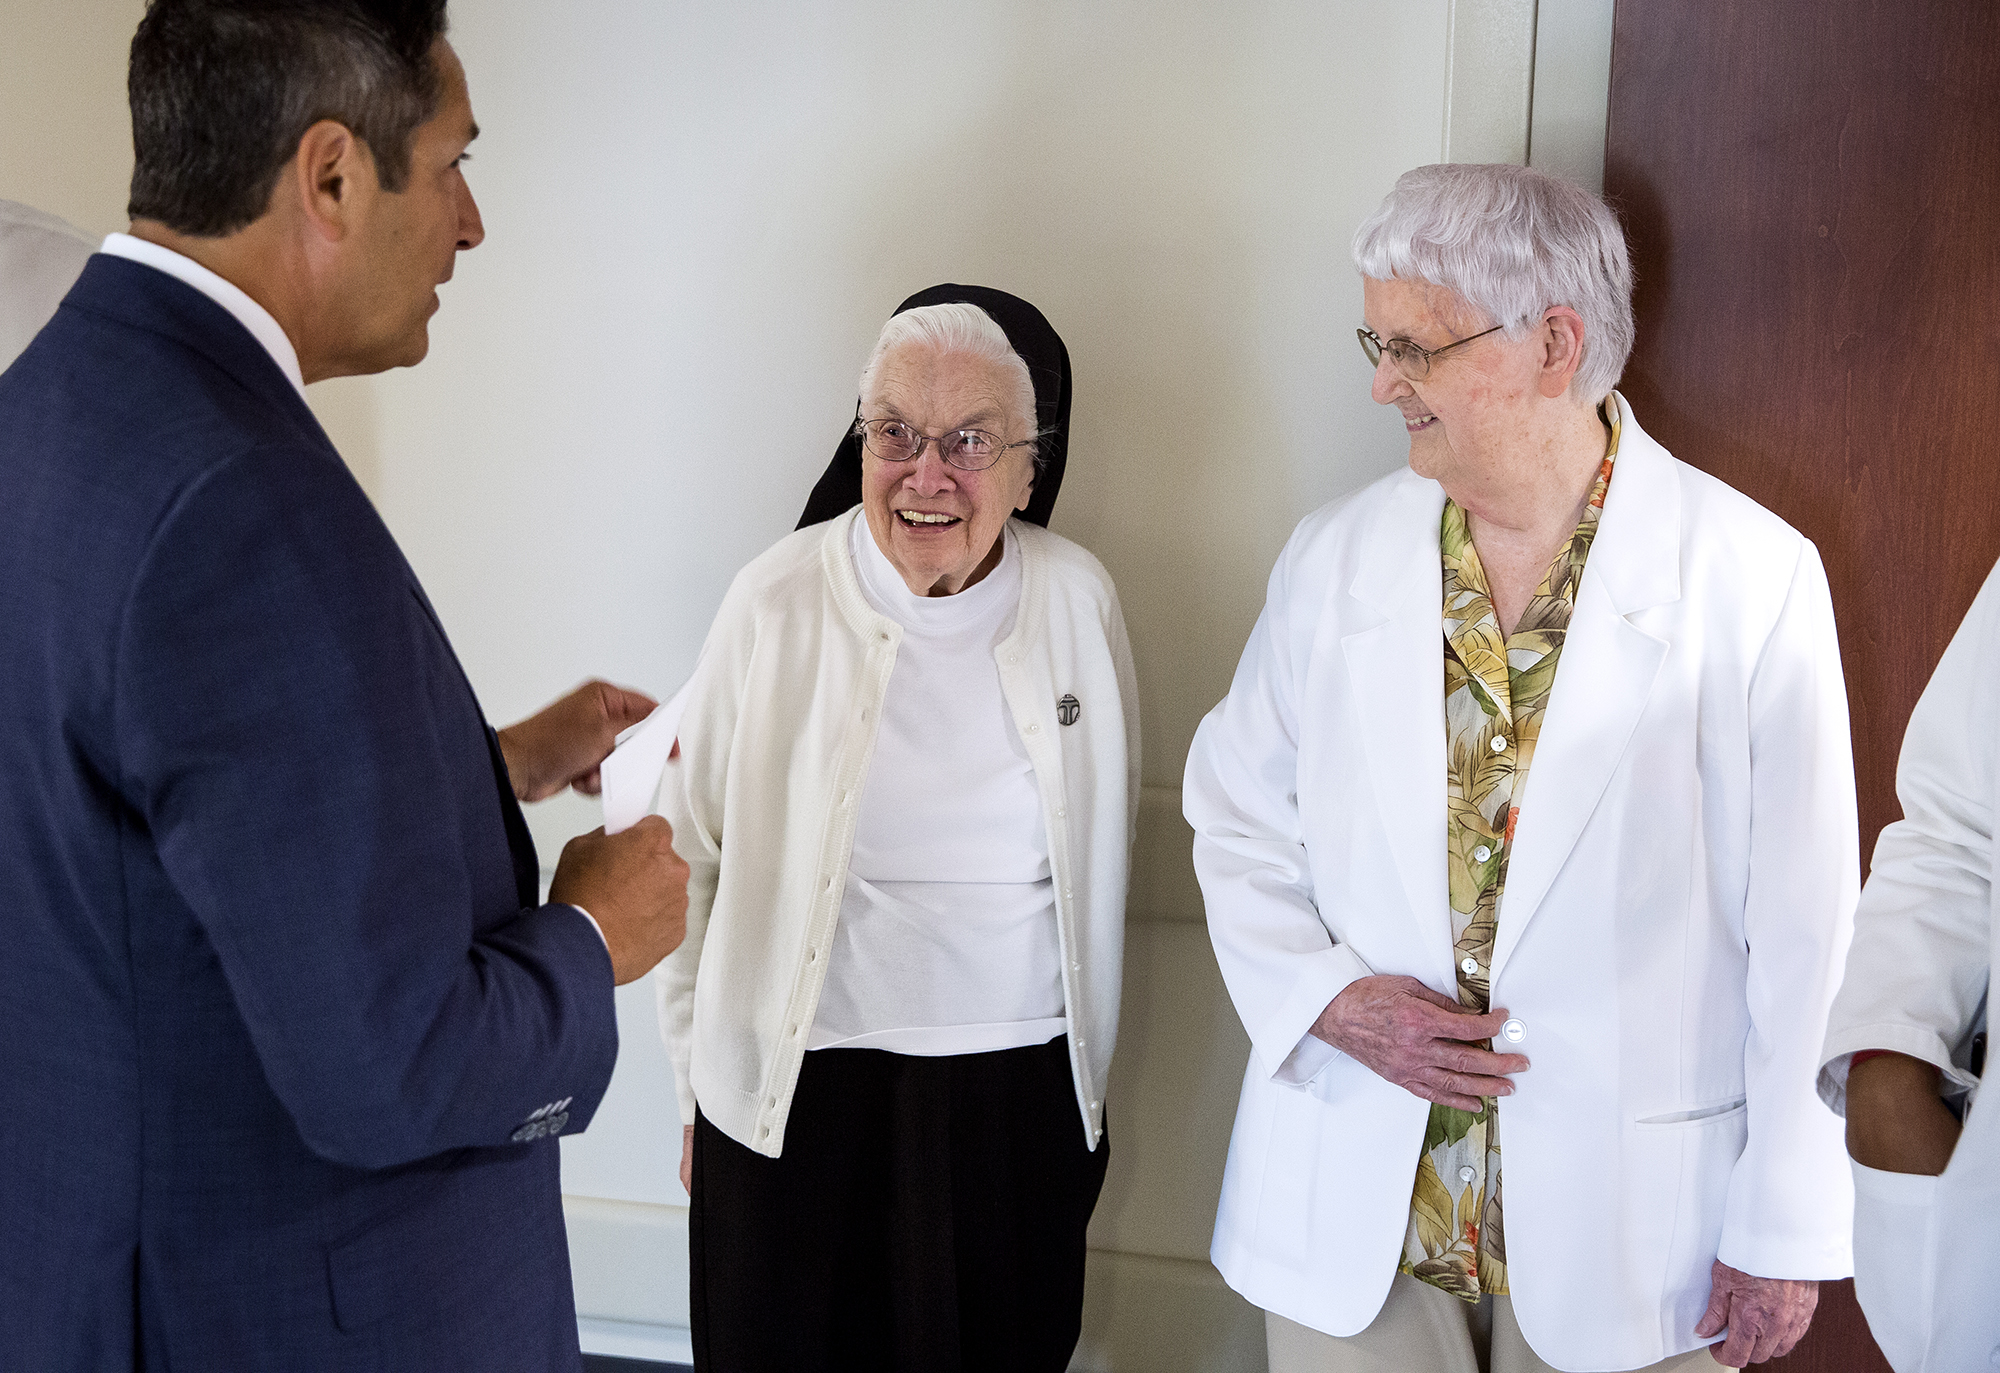 Dr. Gregory Mishkel, executive medical director of Prairie Heart Institute at HSHS St. JohnÕs Hospital, talks with Sr.Jonette Devlin, OSF, and Sr. Mary Creedon, OSF, both former ICU nurses, during a blessing for the institute's new cardiovascular intensive care unit  Monday, July 9, 2018 in Springfield, Ill. Sr. Devlin helped care for the hospital's first open heart surgery patient in 1965. [Rich Saal/The State Journal-Register]